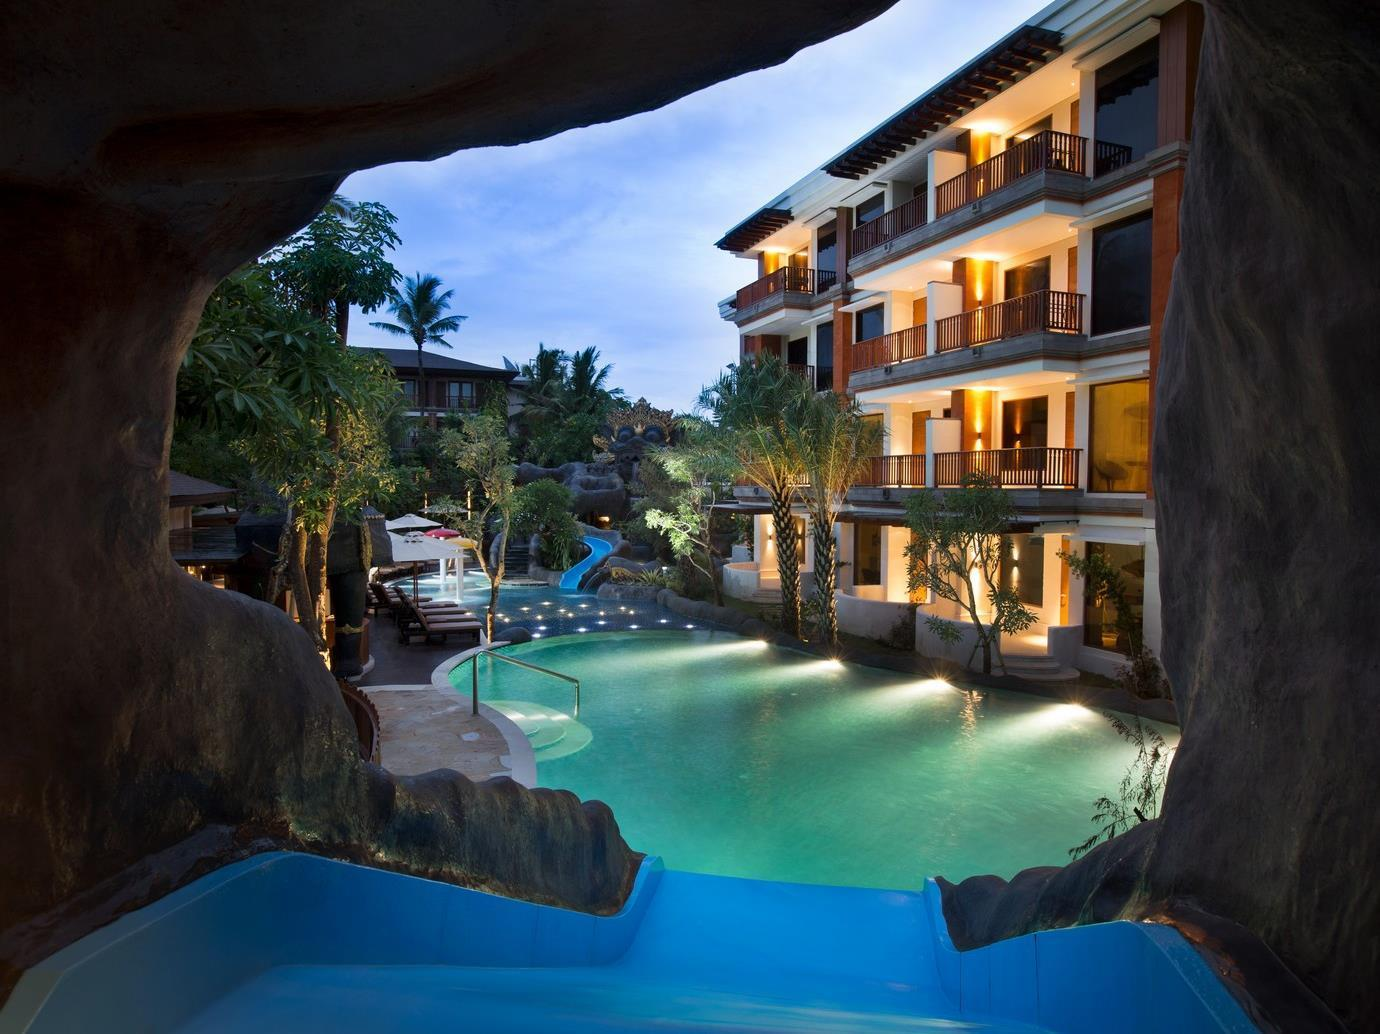 Padma Resort Legian5